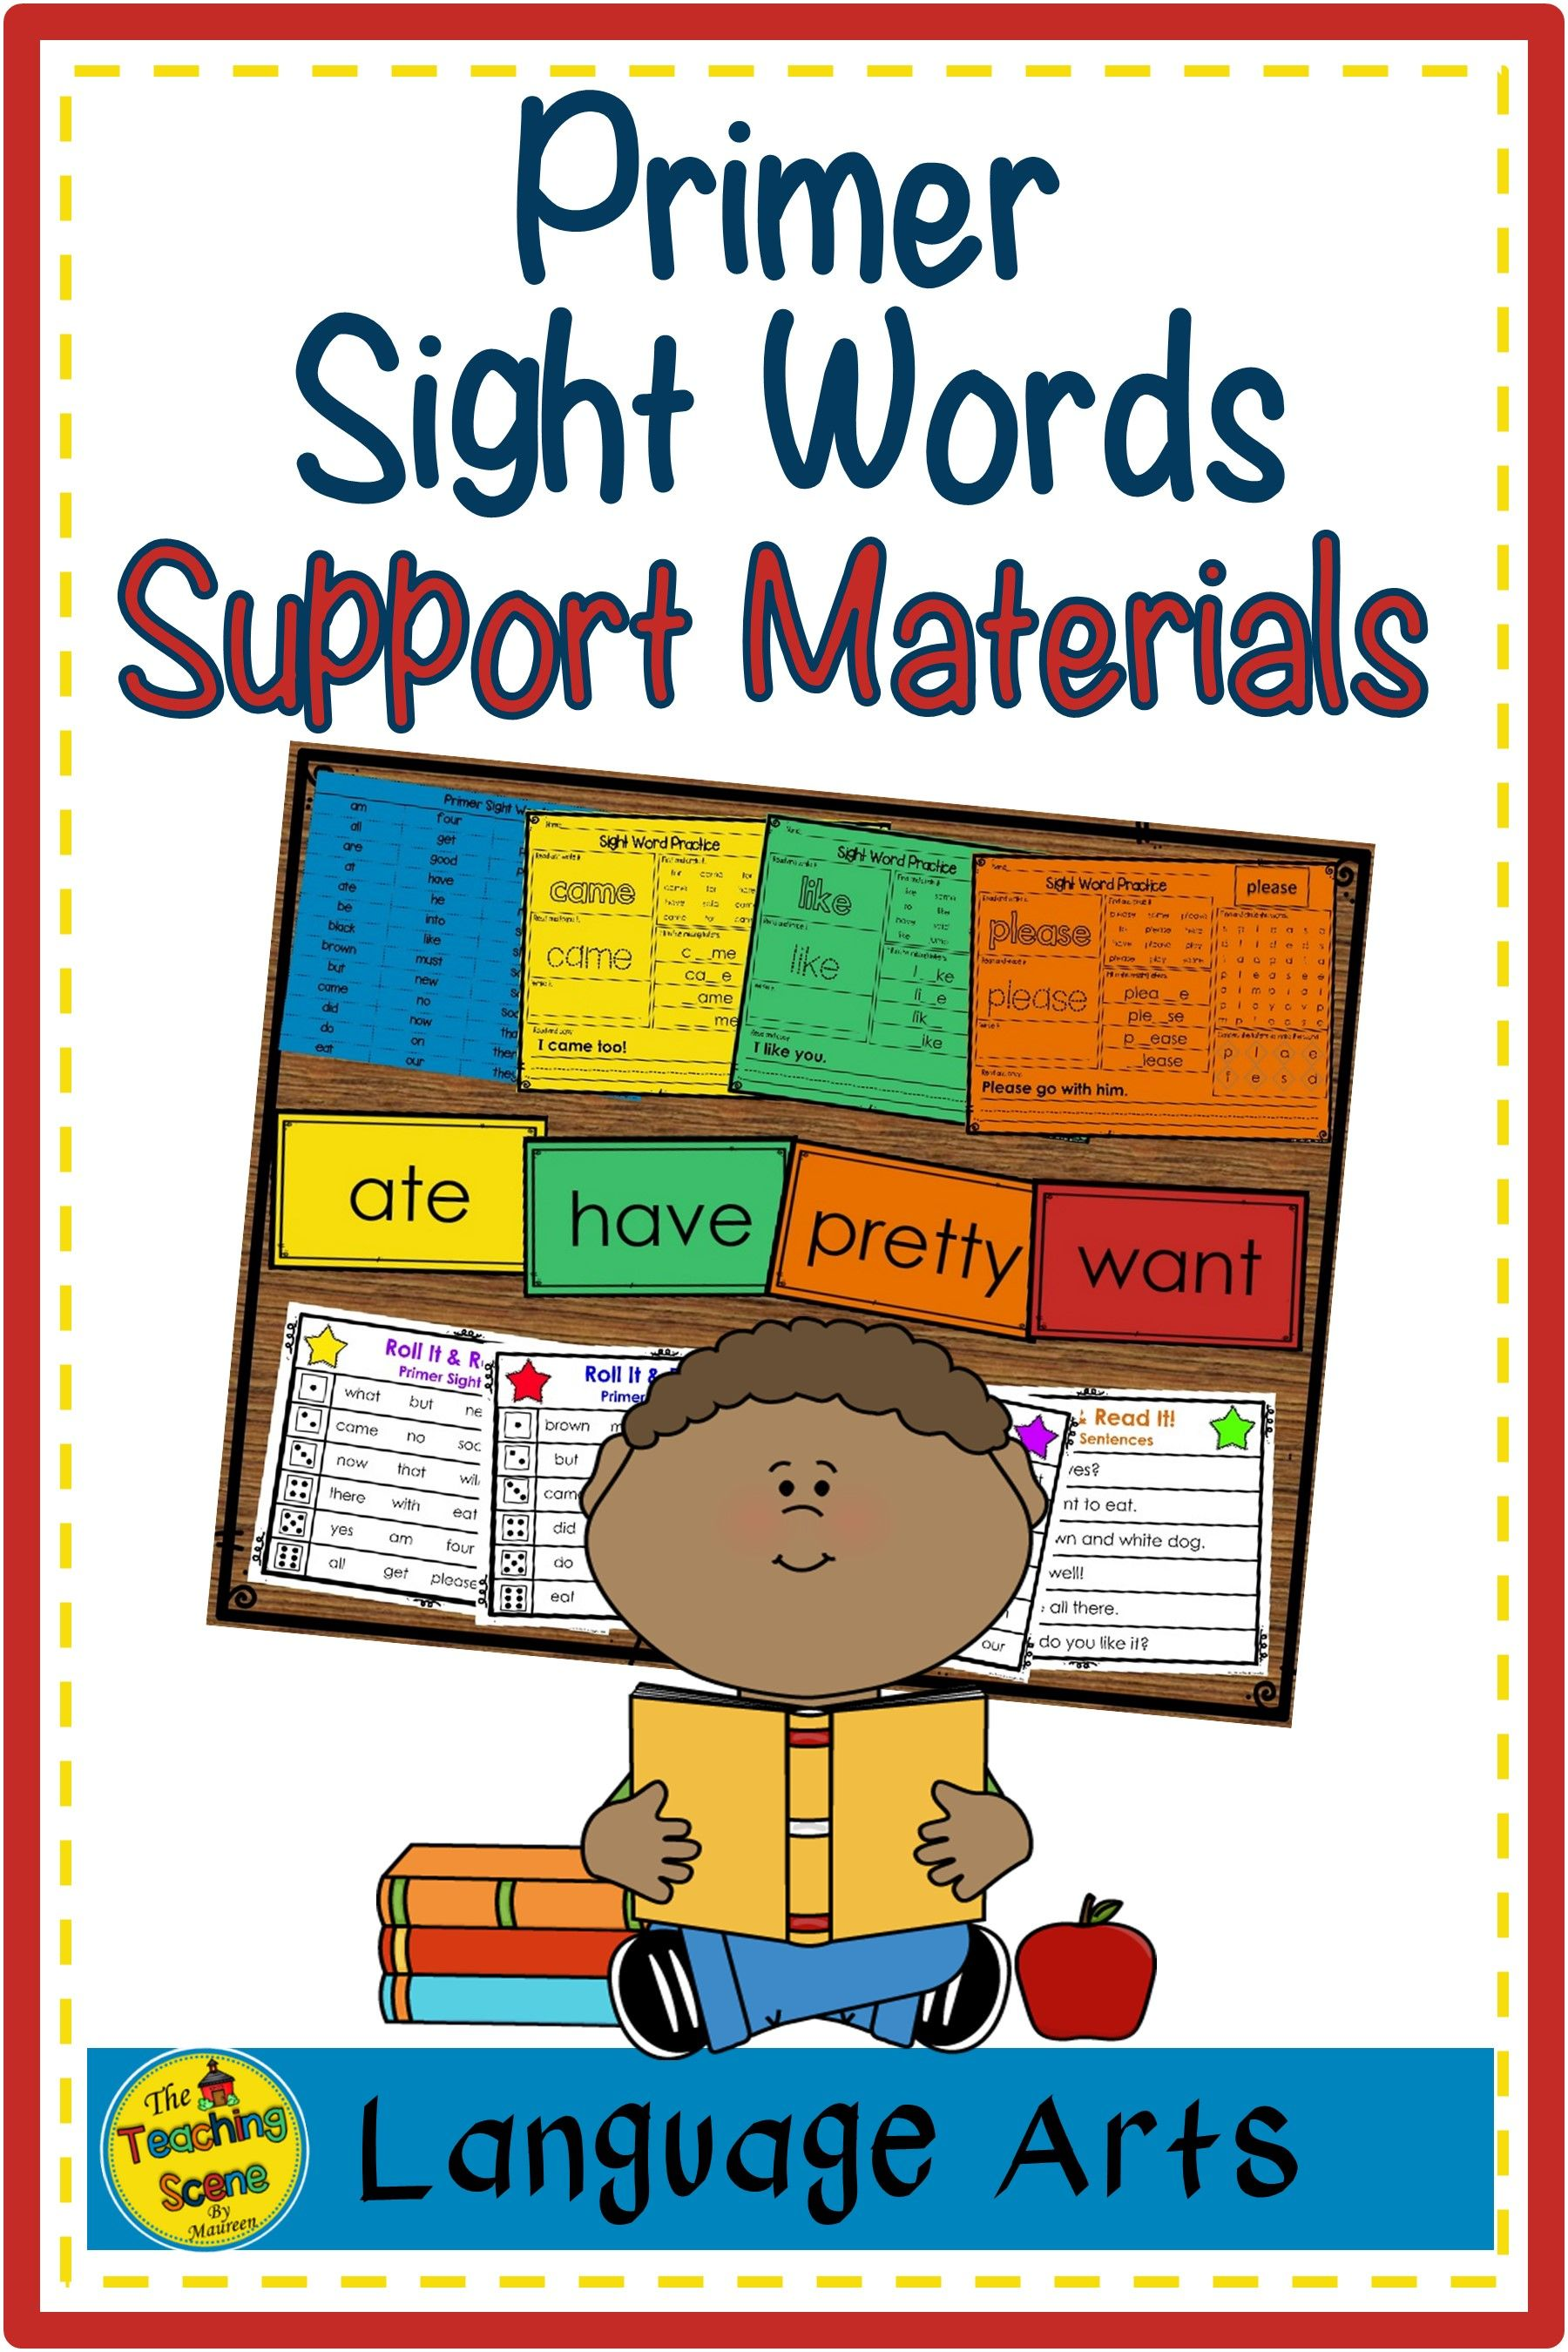 Primer Sight Word Lists Flashcards Worksheets Amp Roll It